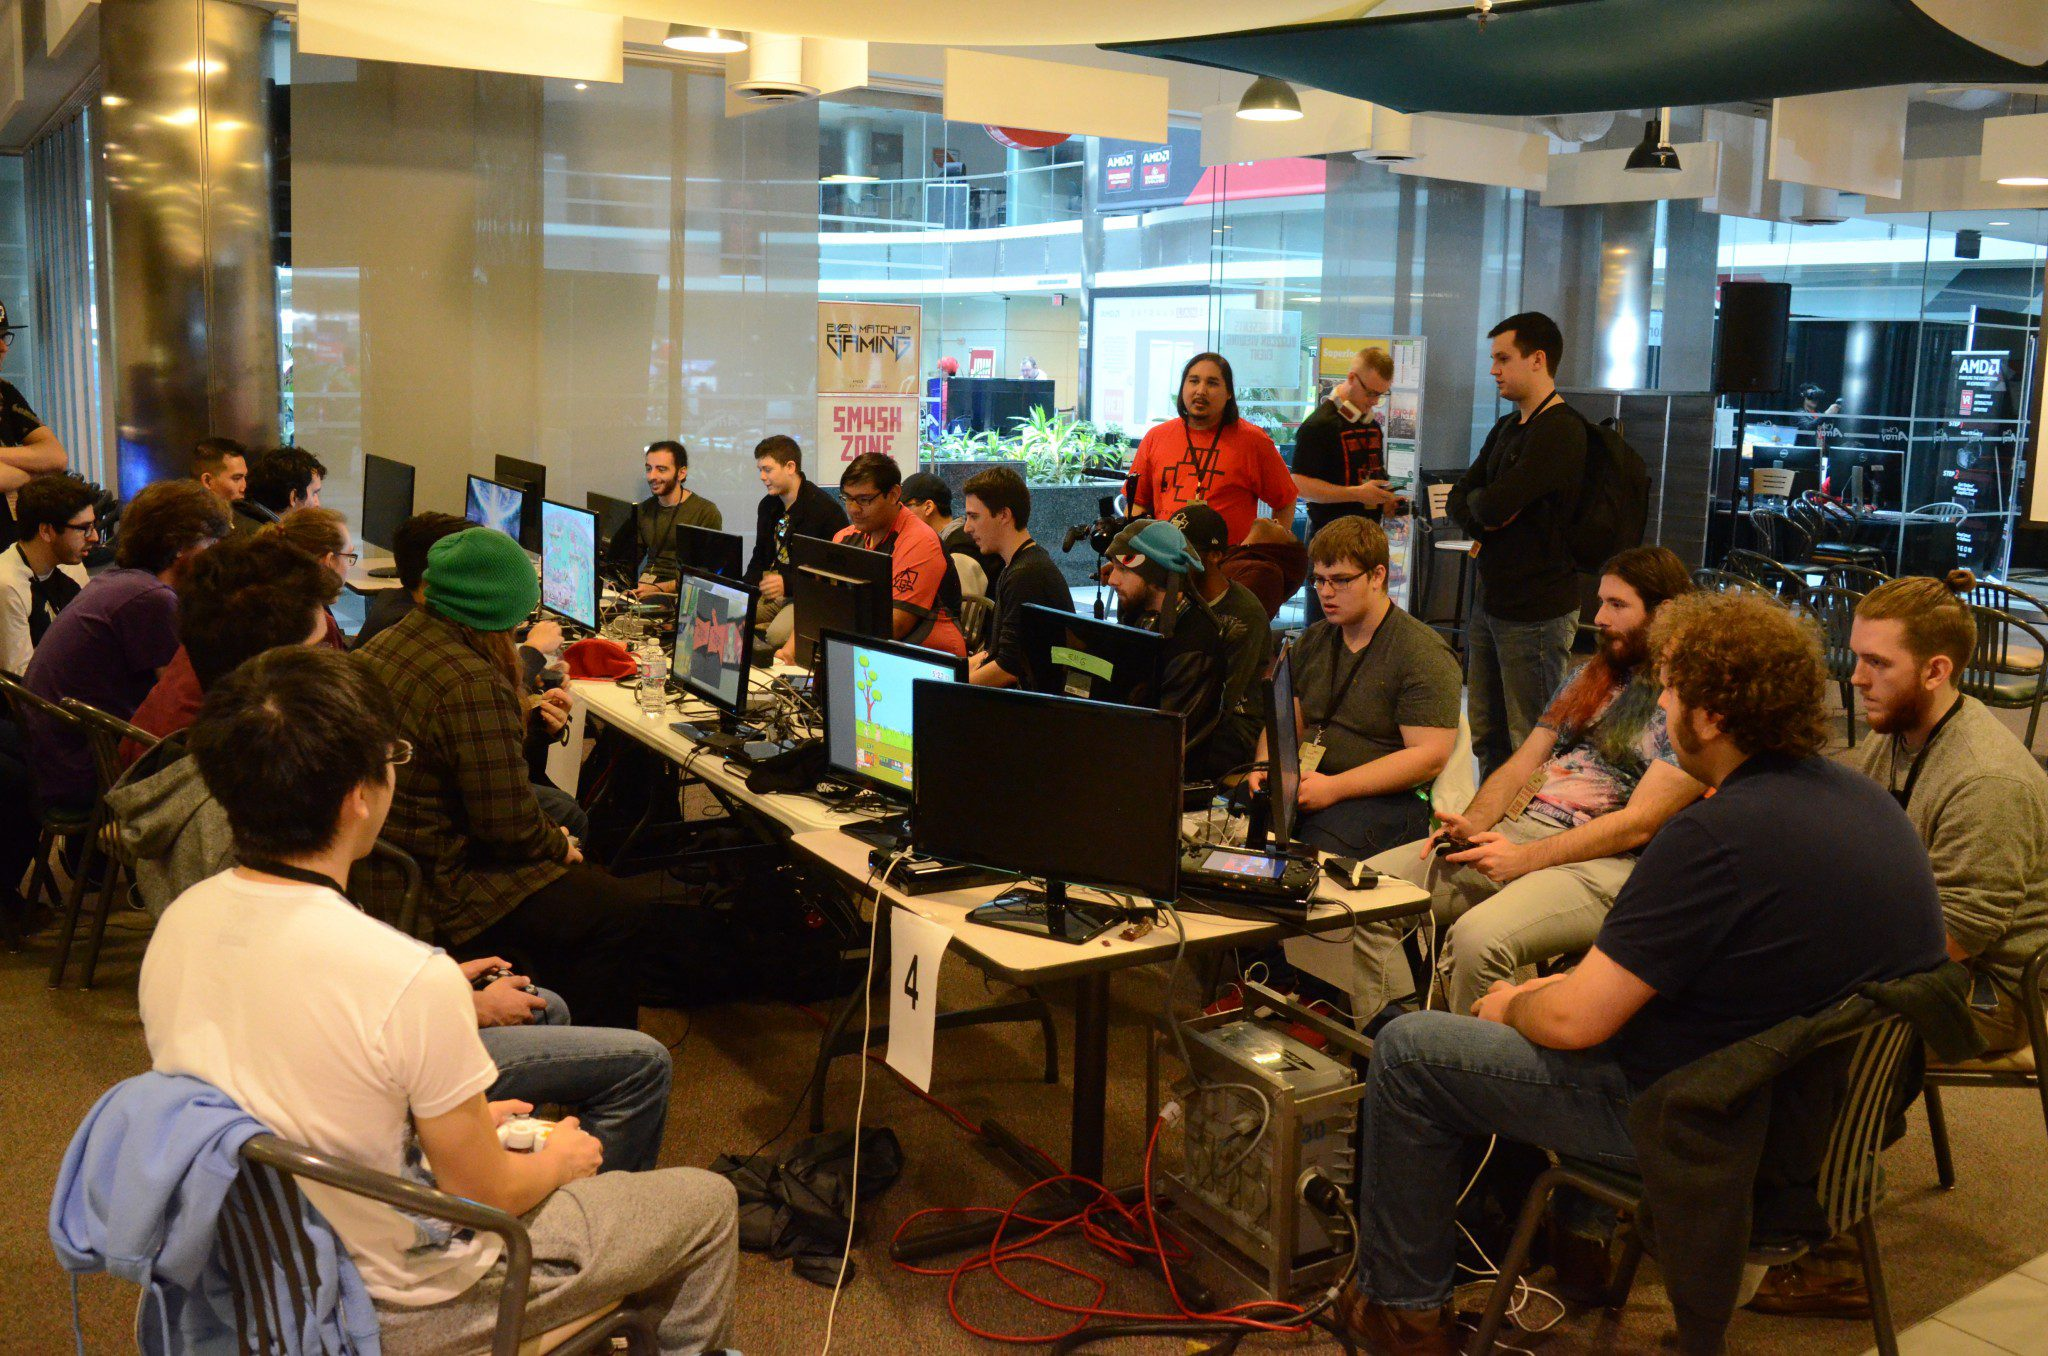 room full of video gamers